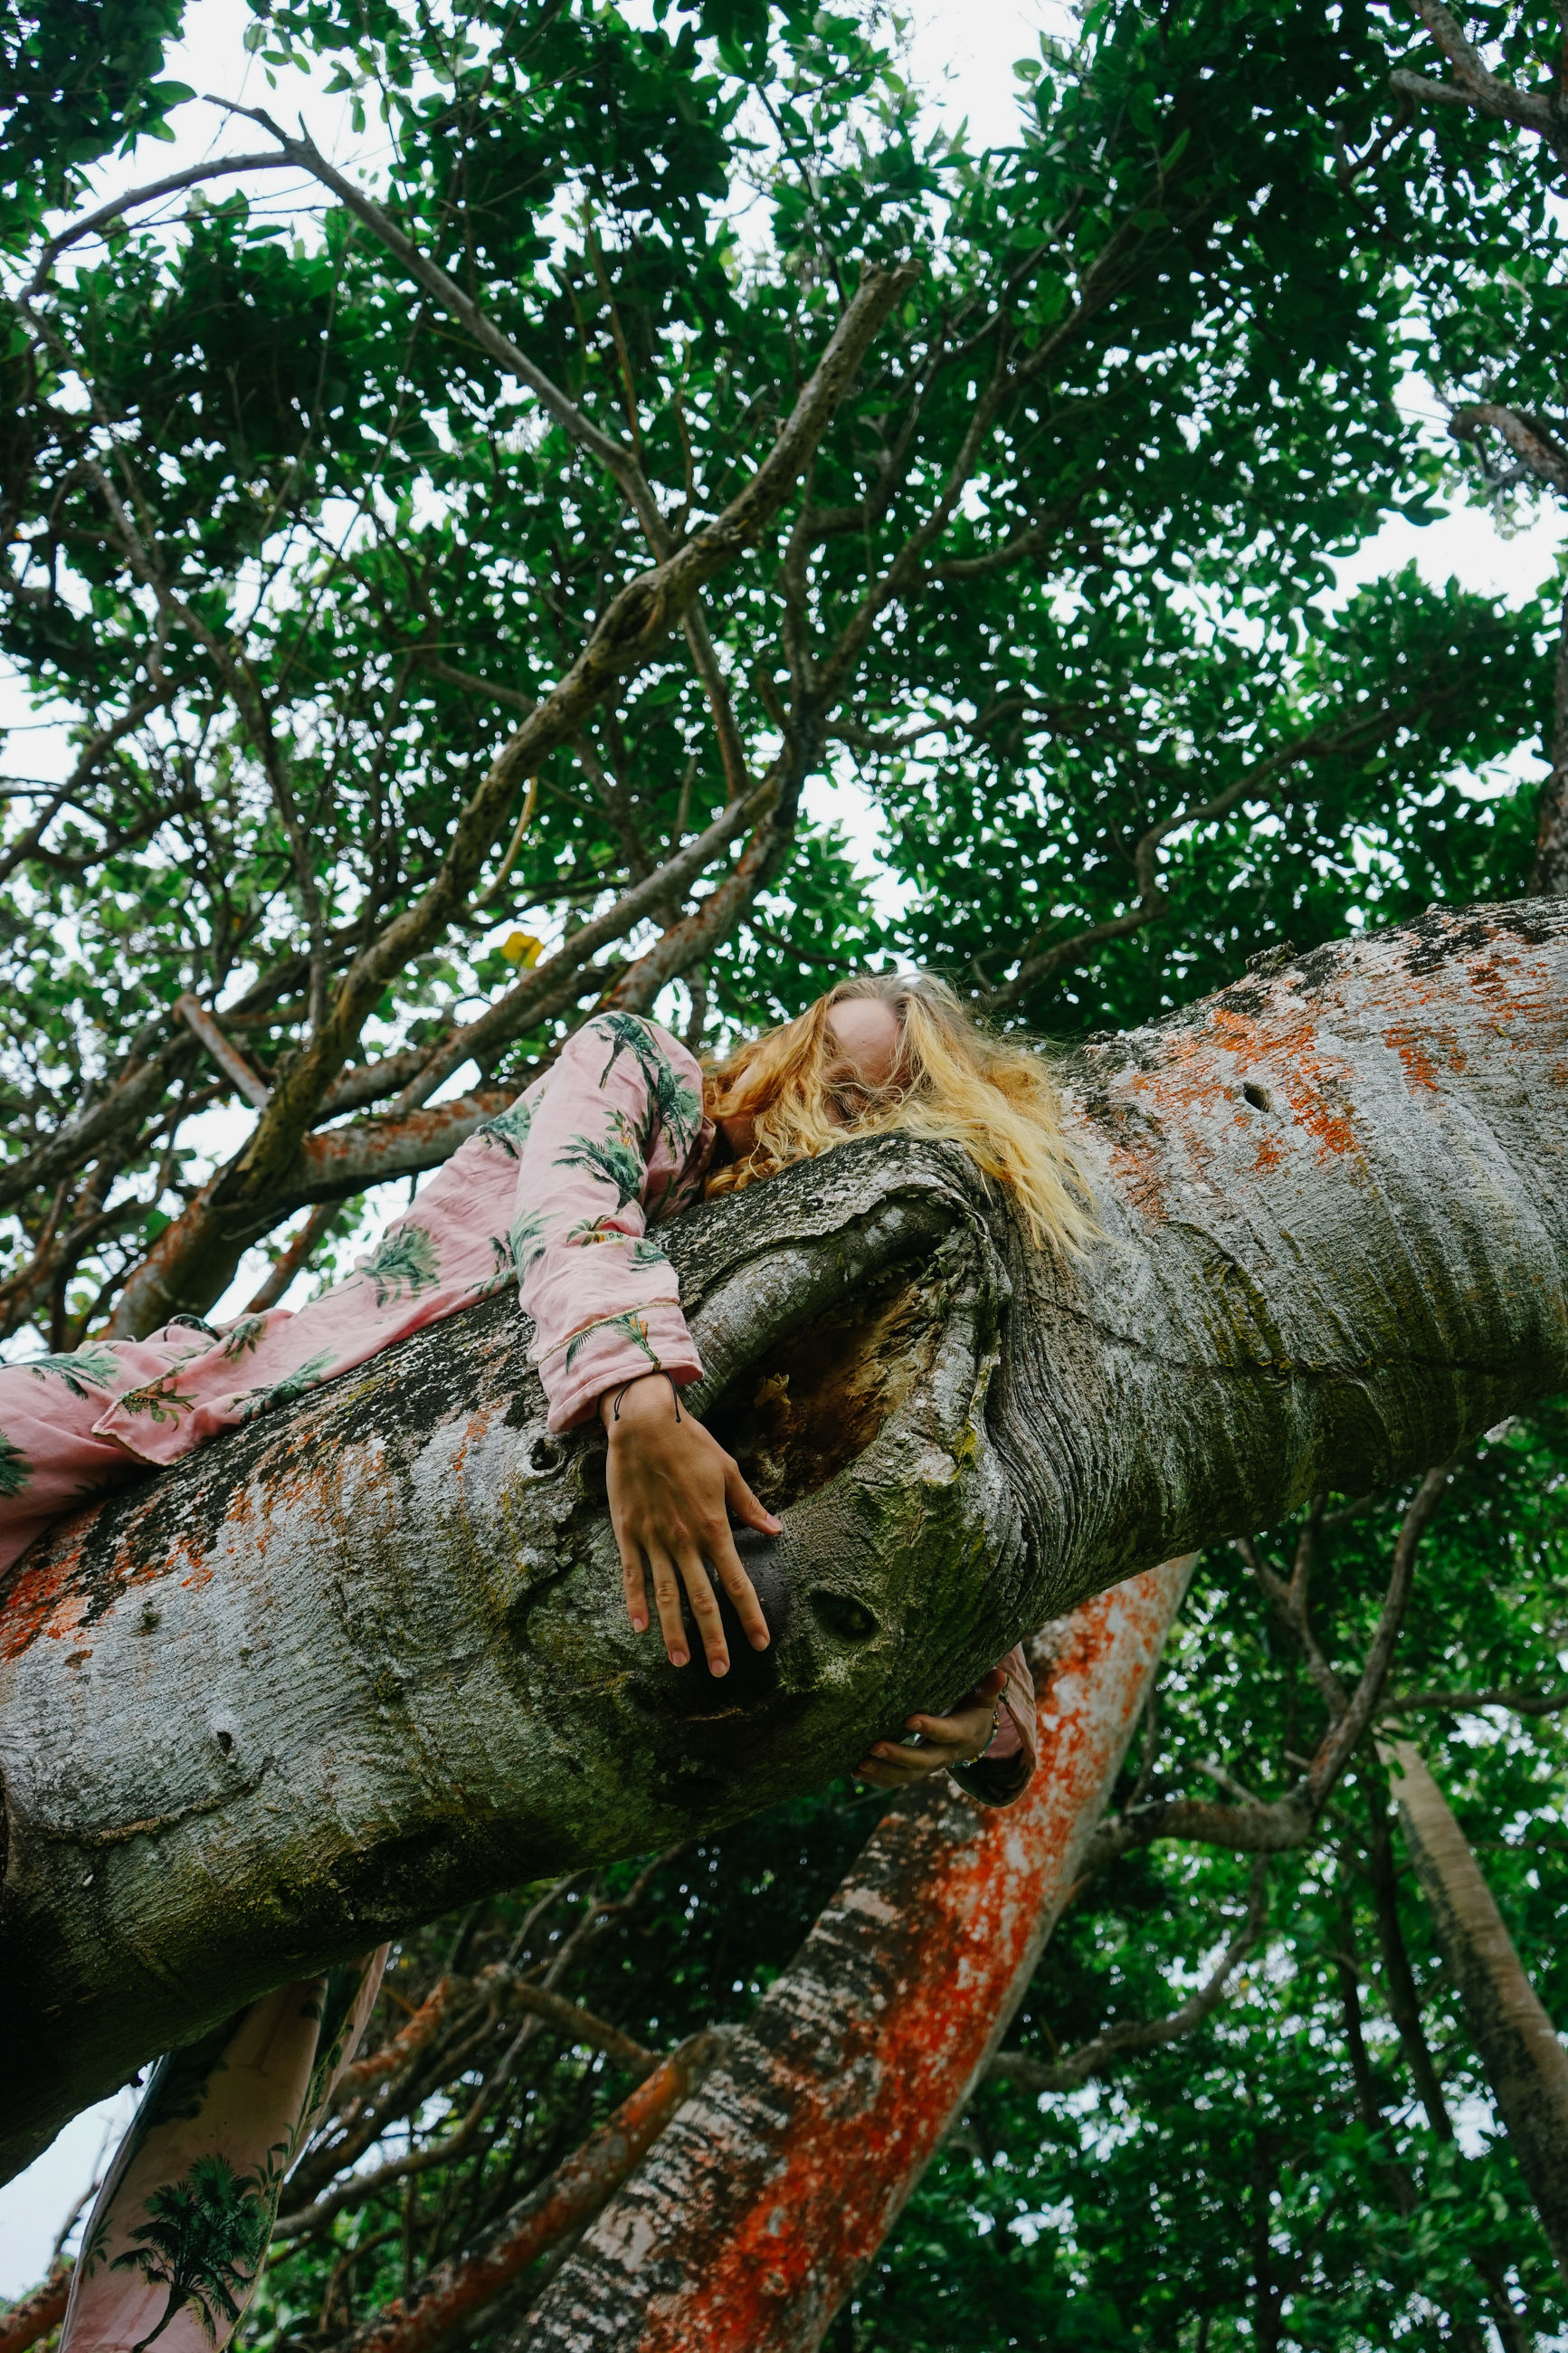 tree, plant, forest, jungle, branch, rainforest, nature, leaf, low angle view, day, growth, outdoors, tree trunk, flower, natural environment, trunk, one person, animal, wildlife, animal wildlife, animal themes, woodland, green, climbing, leisure activity